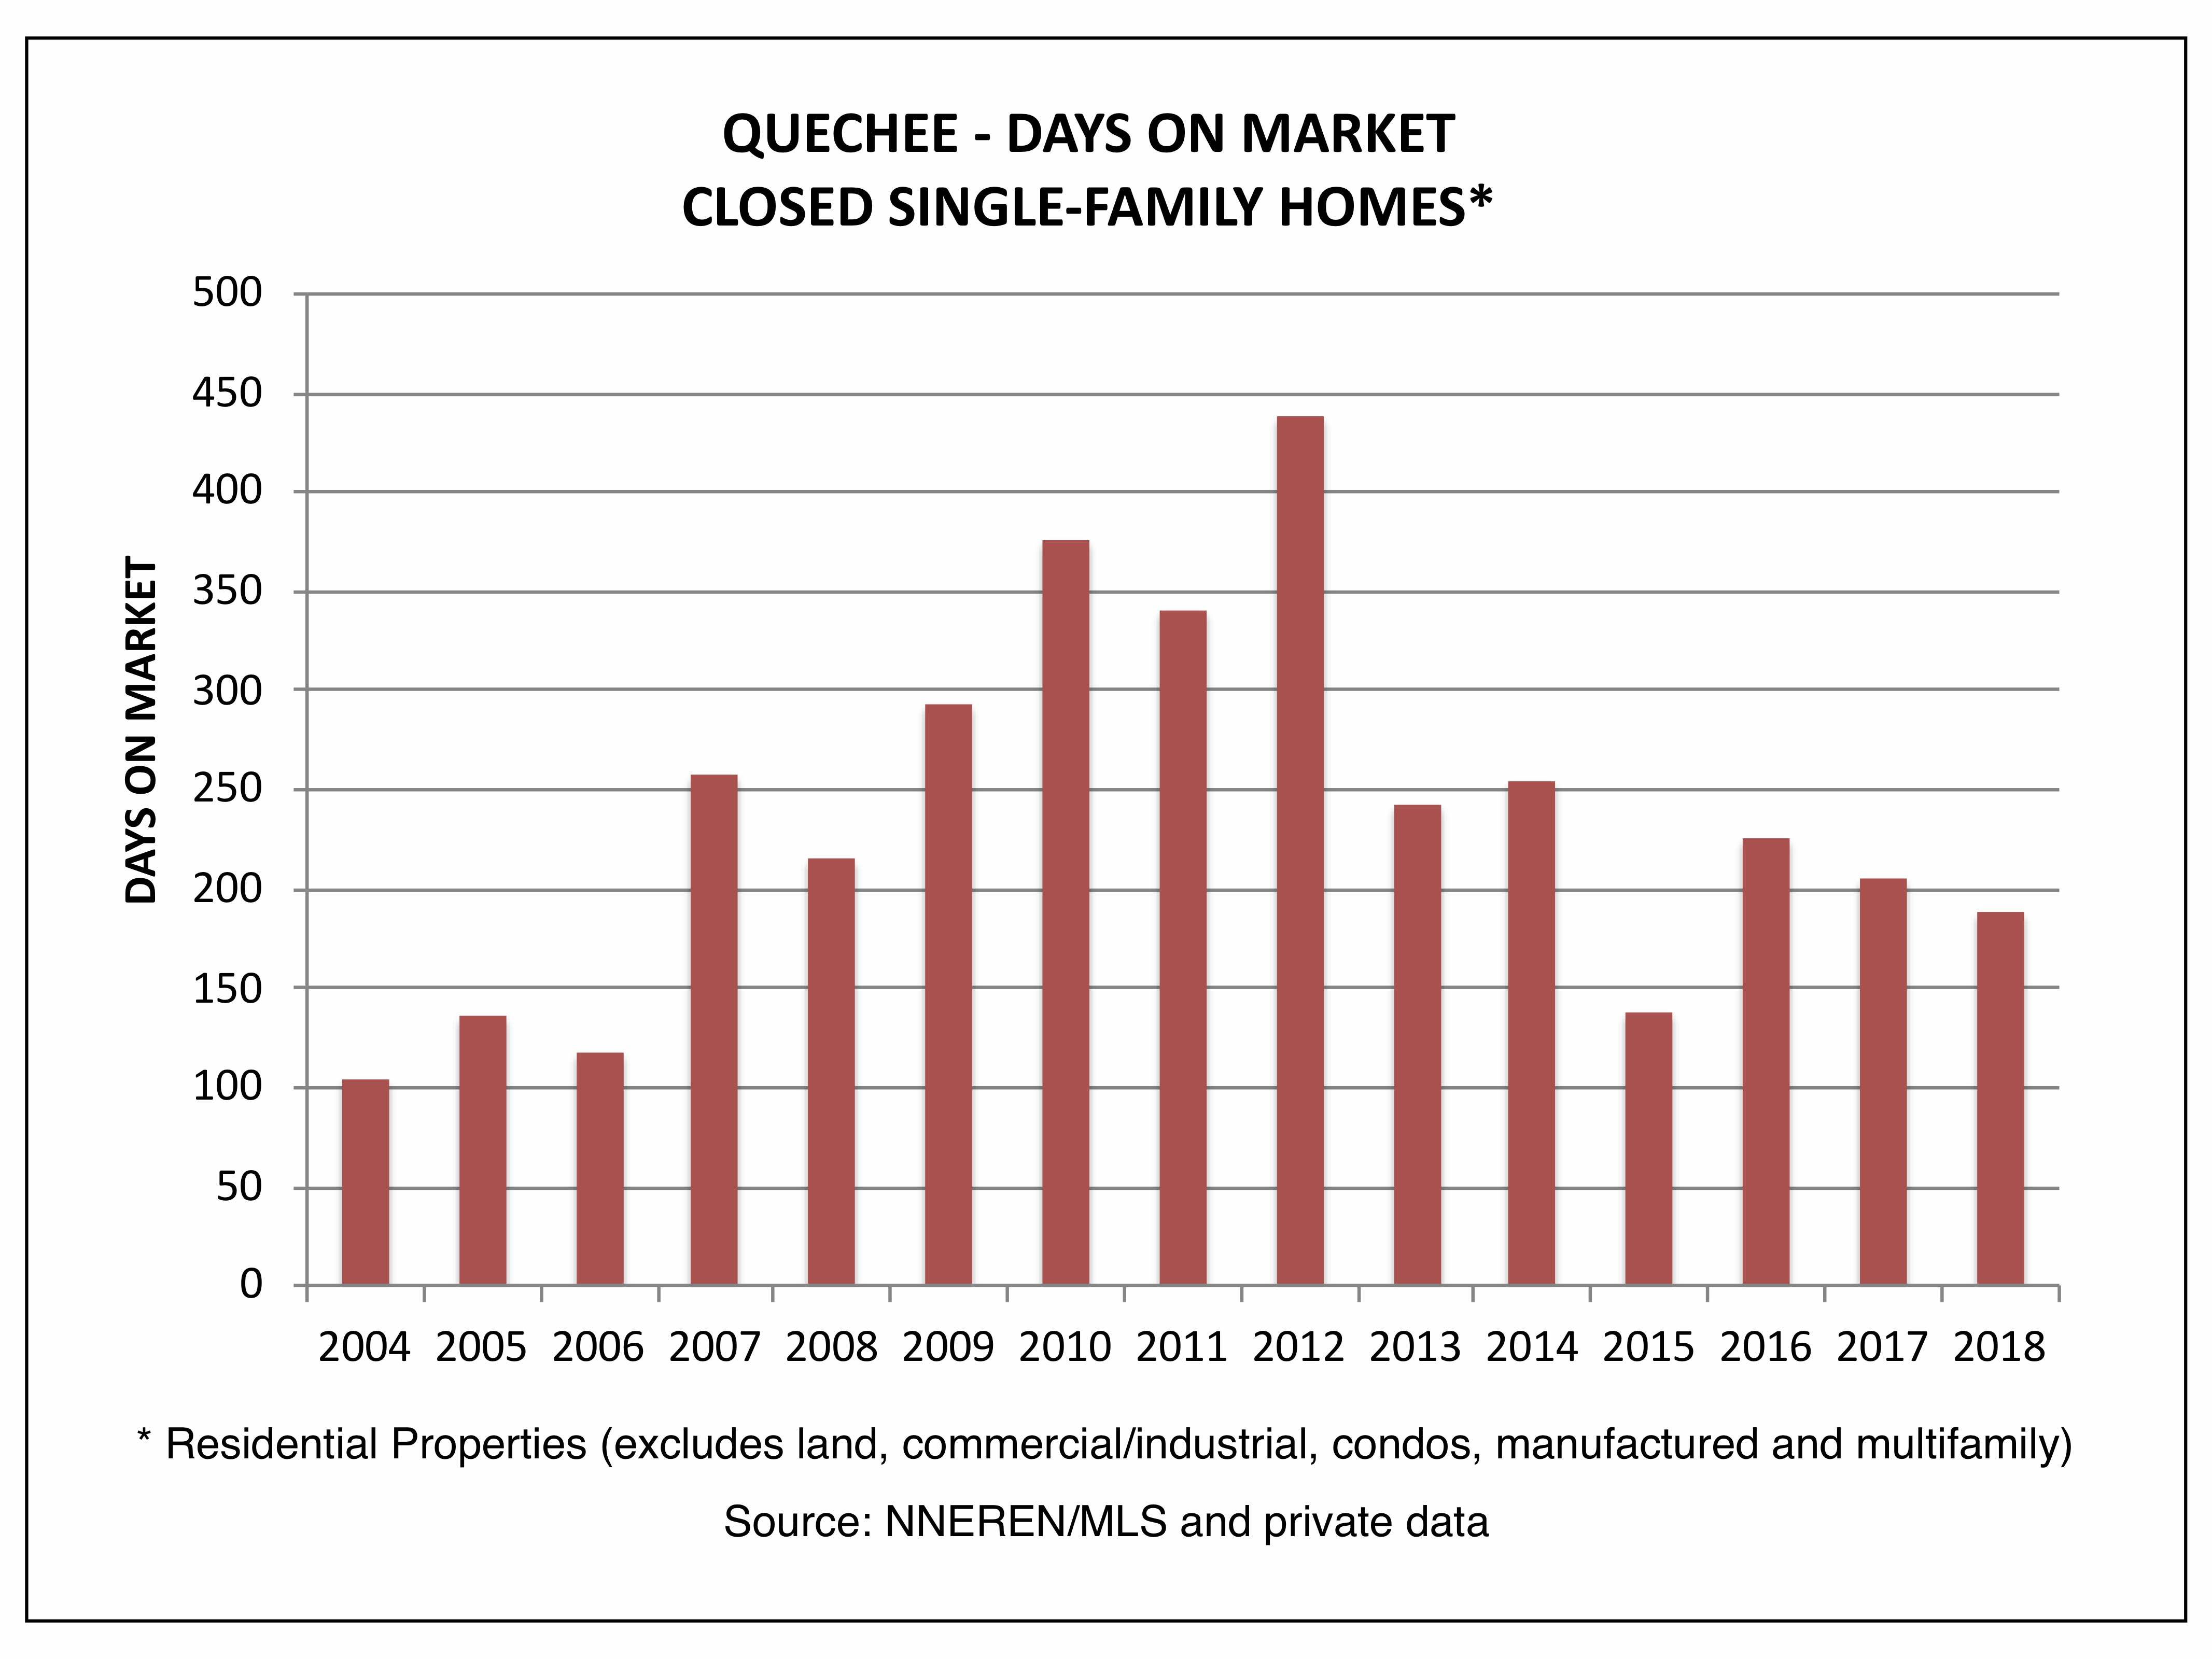 Quechee VT Real Estate - Days on Market, Closed Homes